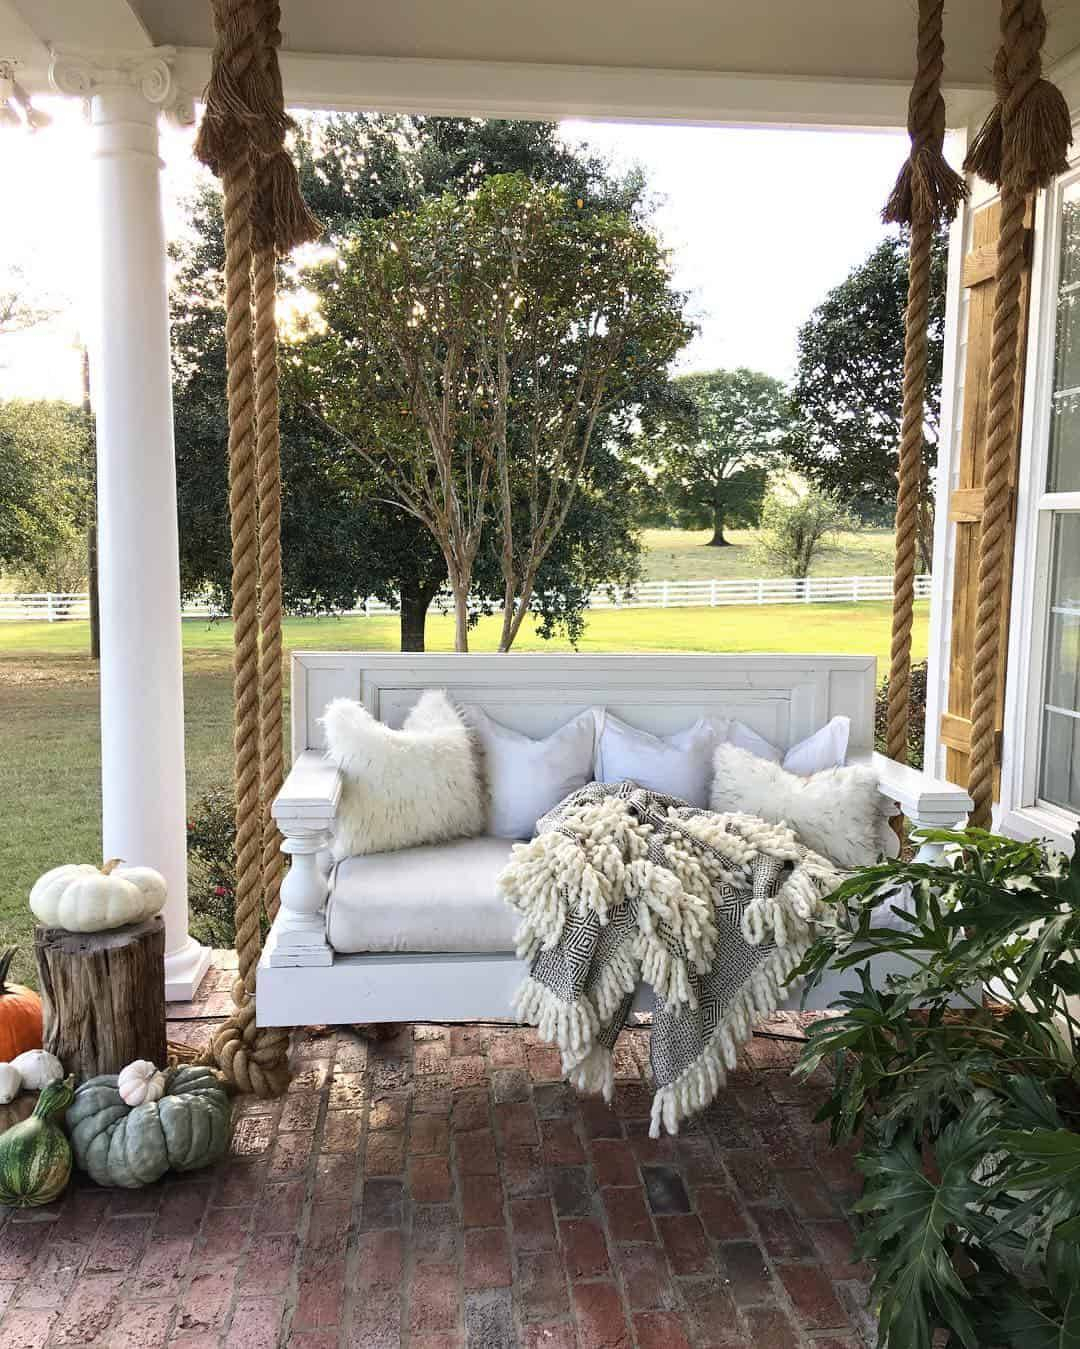 Swinging Porch Bedrooms Seven Reasons Tourists Love Swing Regarding Patio Hanging Porch Swings (View 15 of 25)